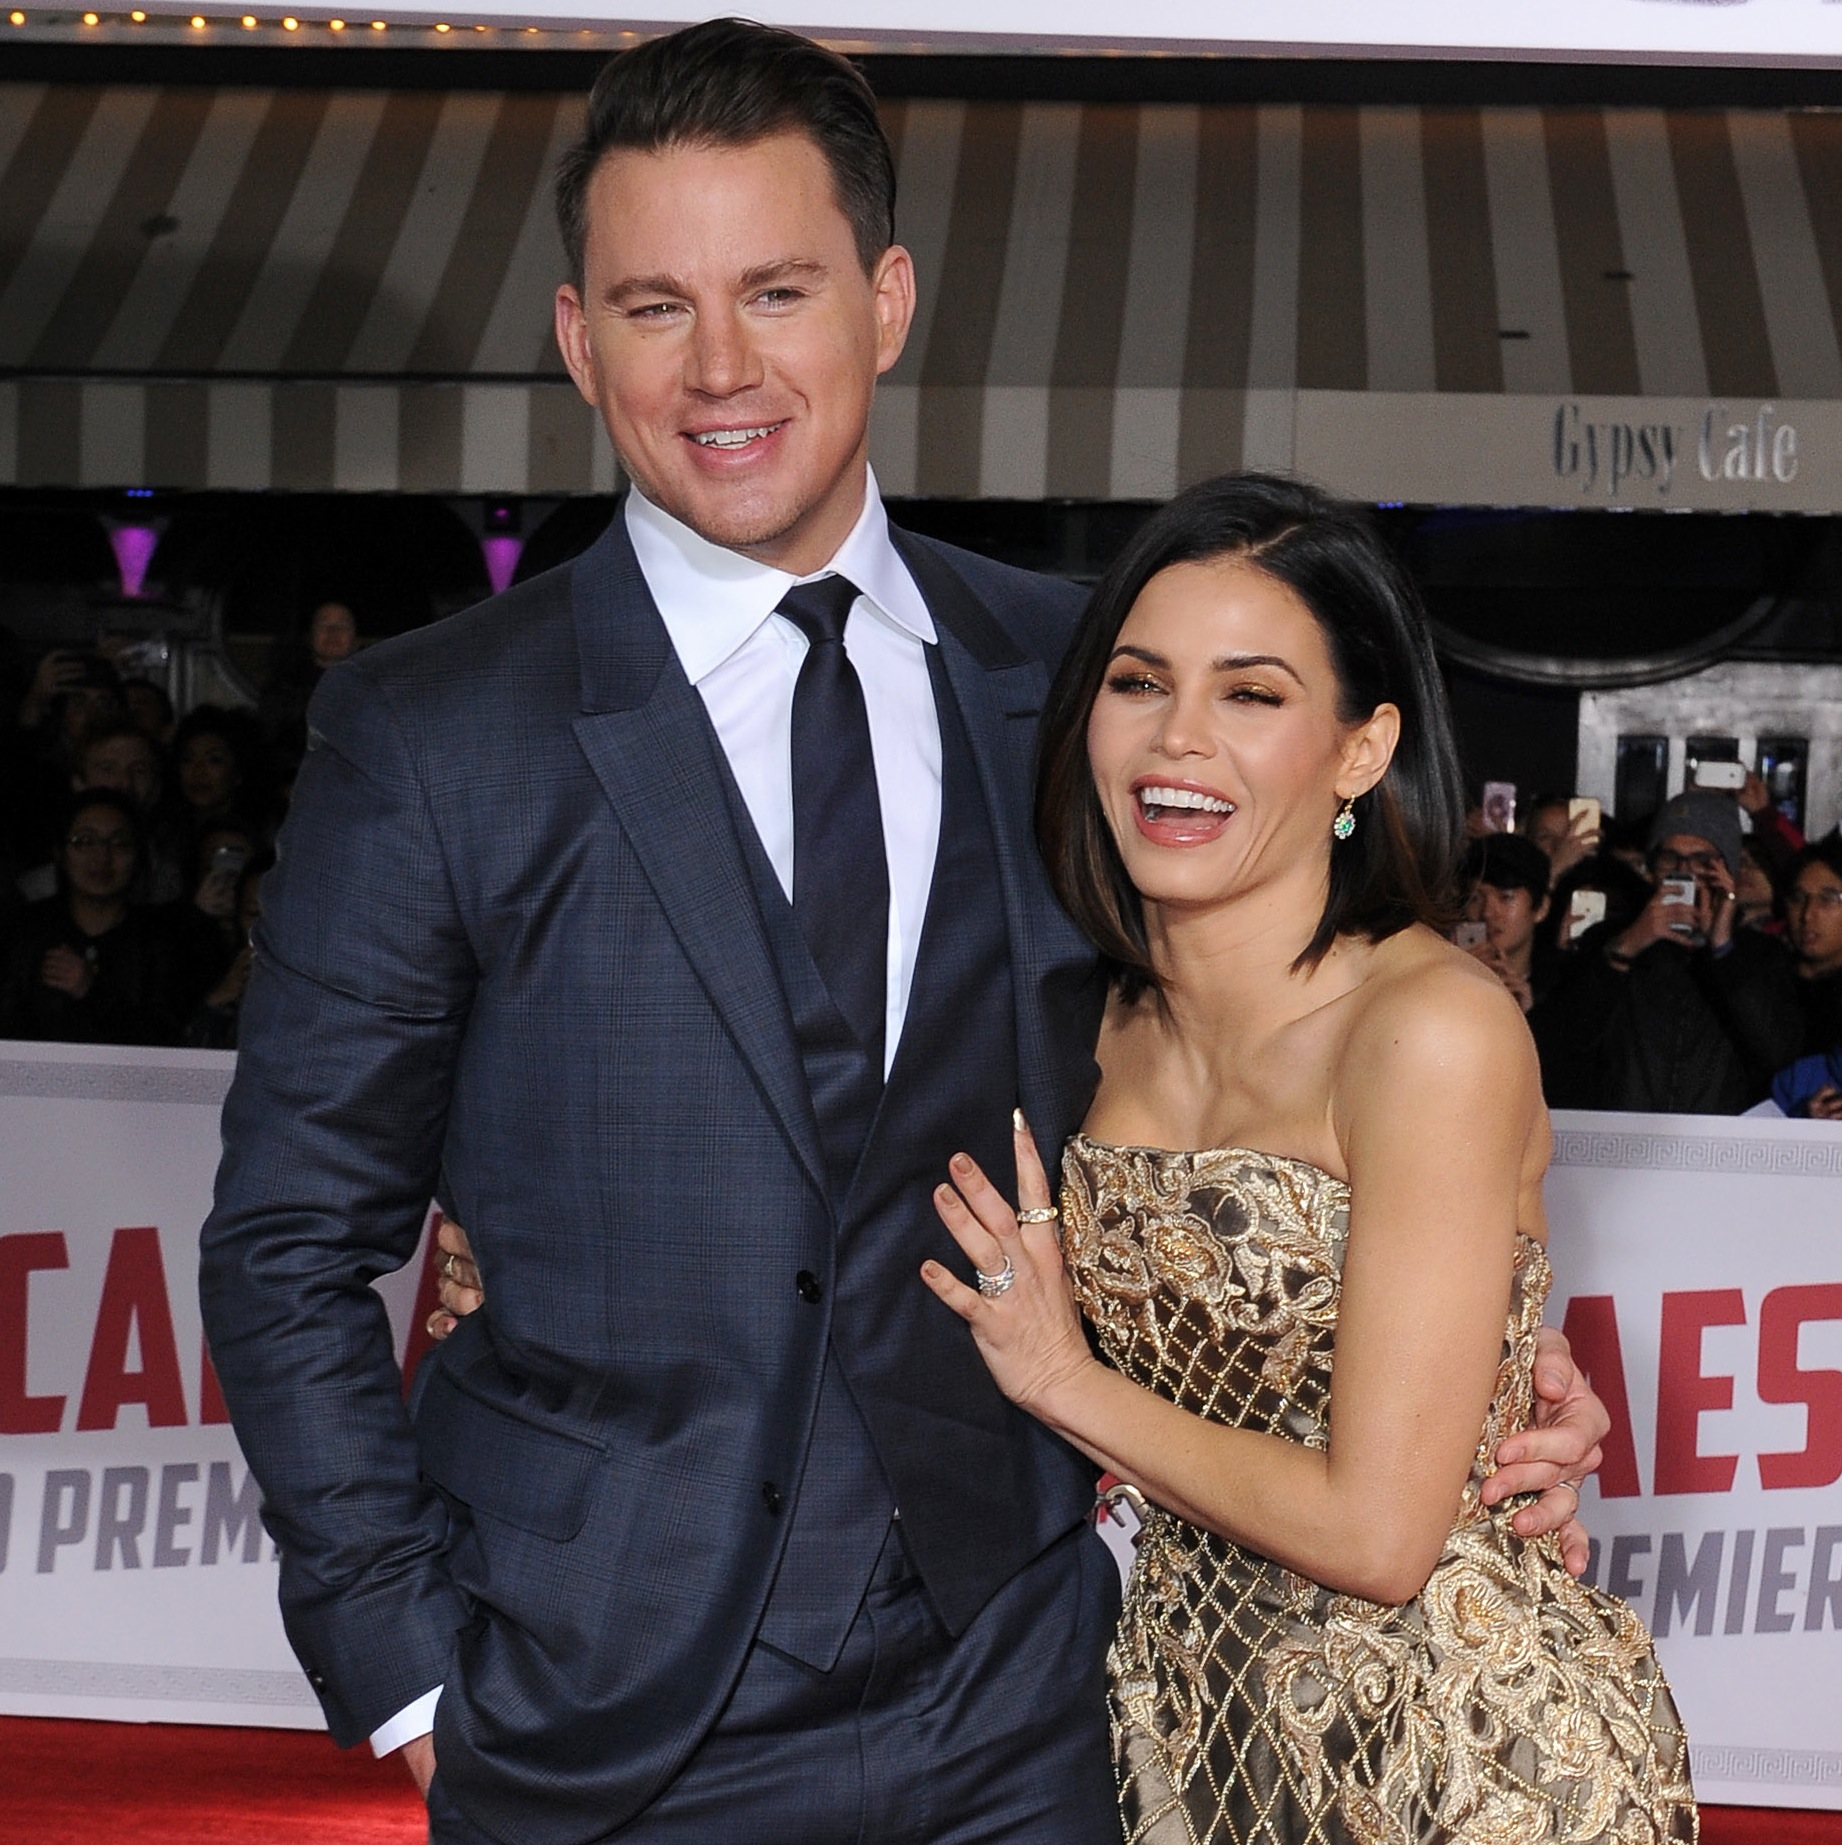 Channing Tatum and Jenna Dewan laughing at a movie premiere.